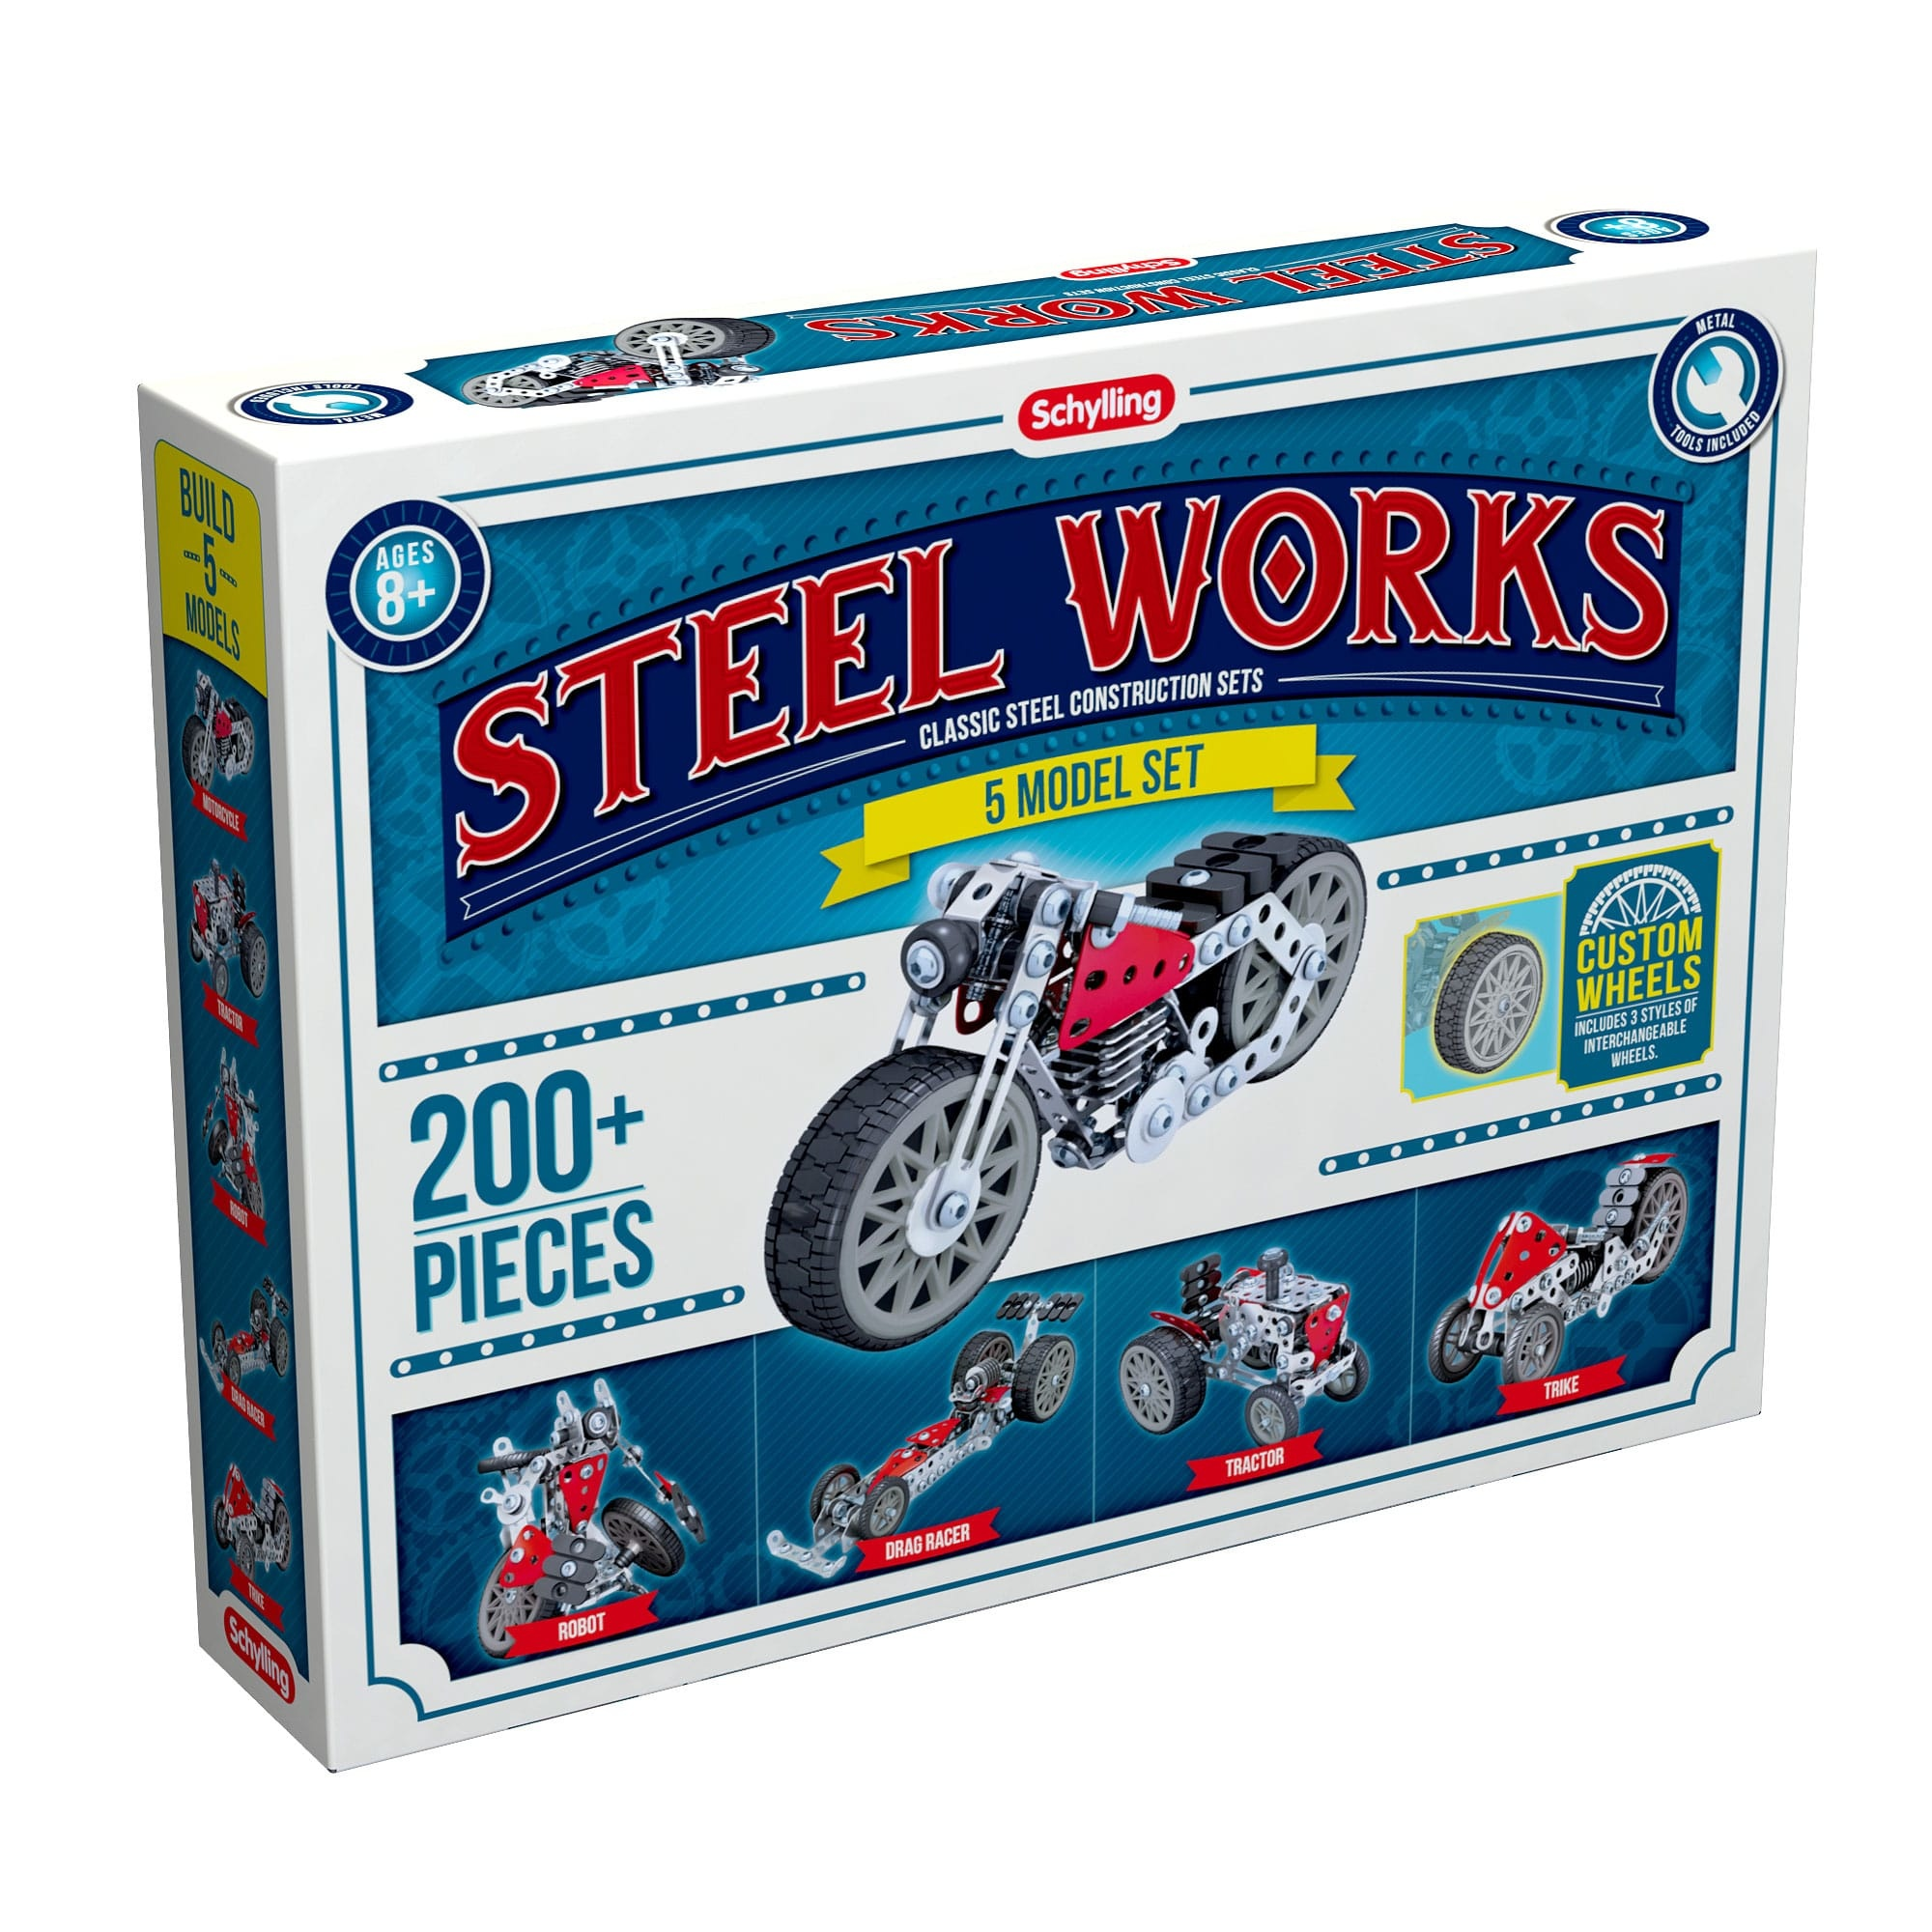 Steel works model set